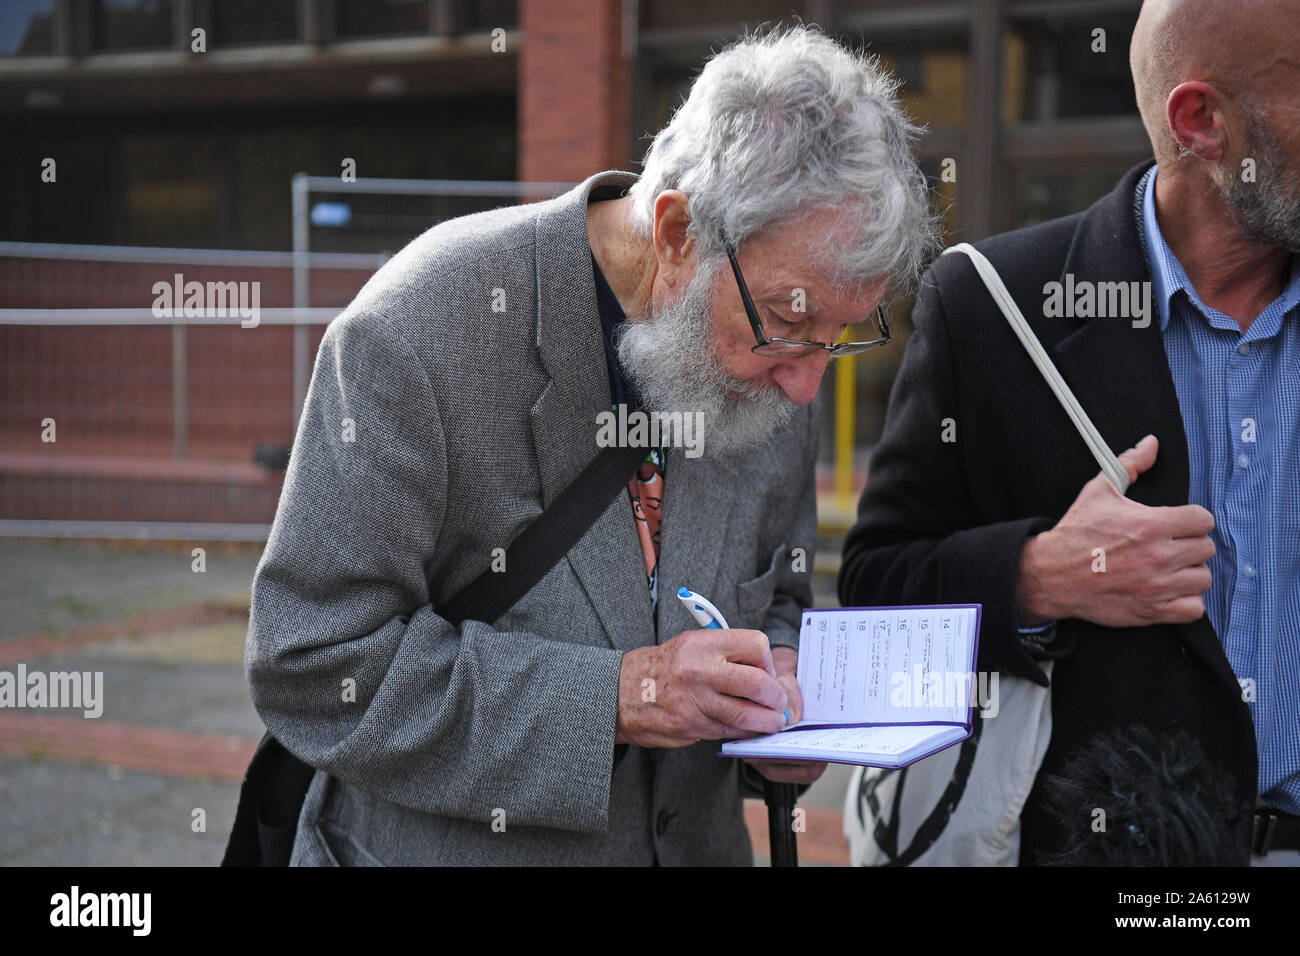 """Extinction Rebellion activist John Lynes, 91, leaving Folkestone Magistrates' Court where he and others appeared for their part in the """"blockade"""" of the Port of Dover in September. PA Photo. Picture date: Wednesday October 23, 2019. During the demonstration protesters occupied one side of a dual carriageway at the busy Kent trade hub amid a heavy police presence. See PA story COURTS Protests. Photo credit should read: Kirsty O'Connor/PA Wire Stock Photo"""